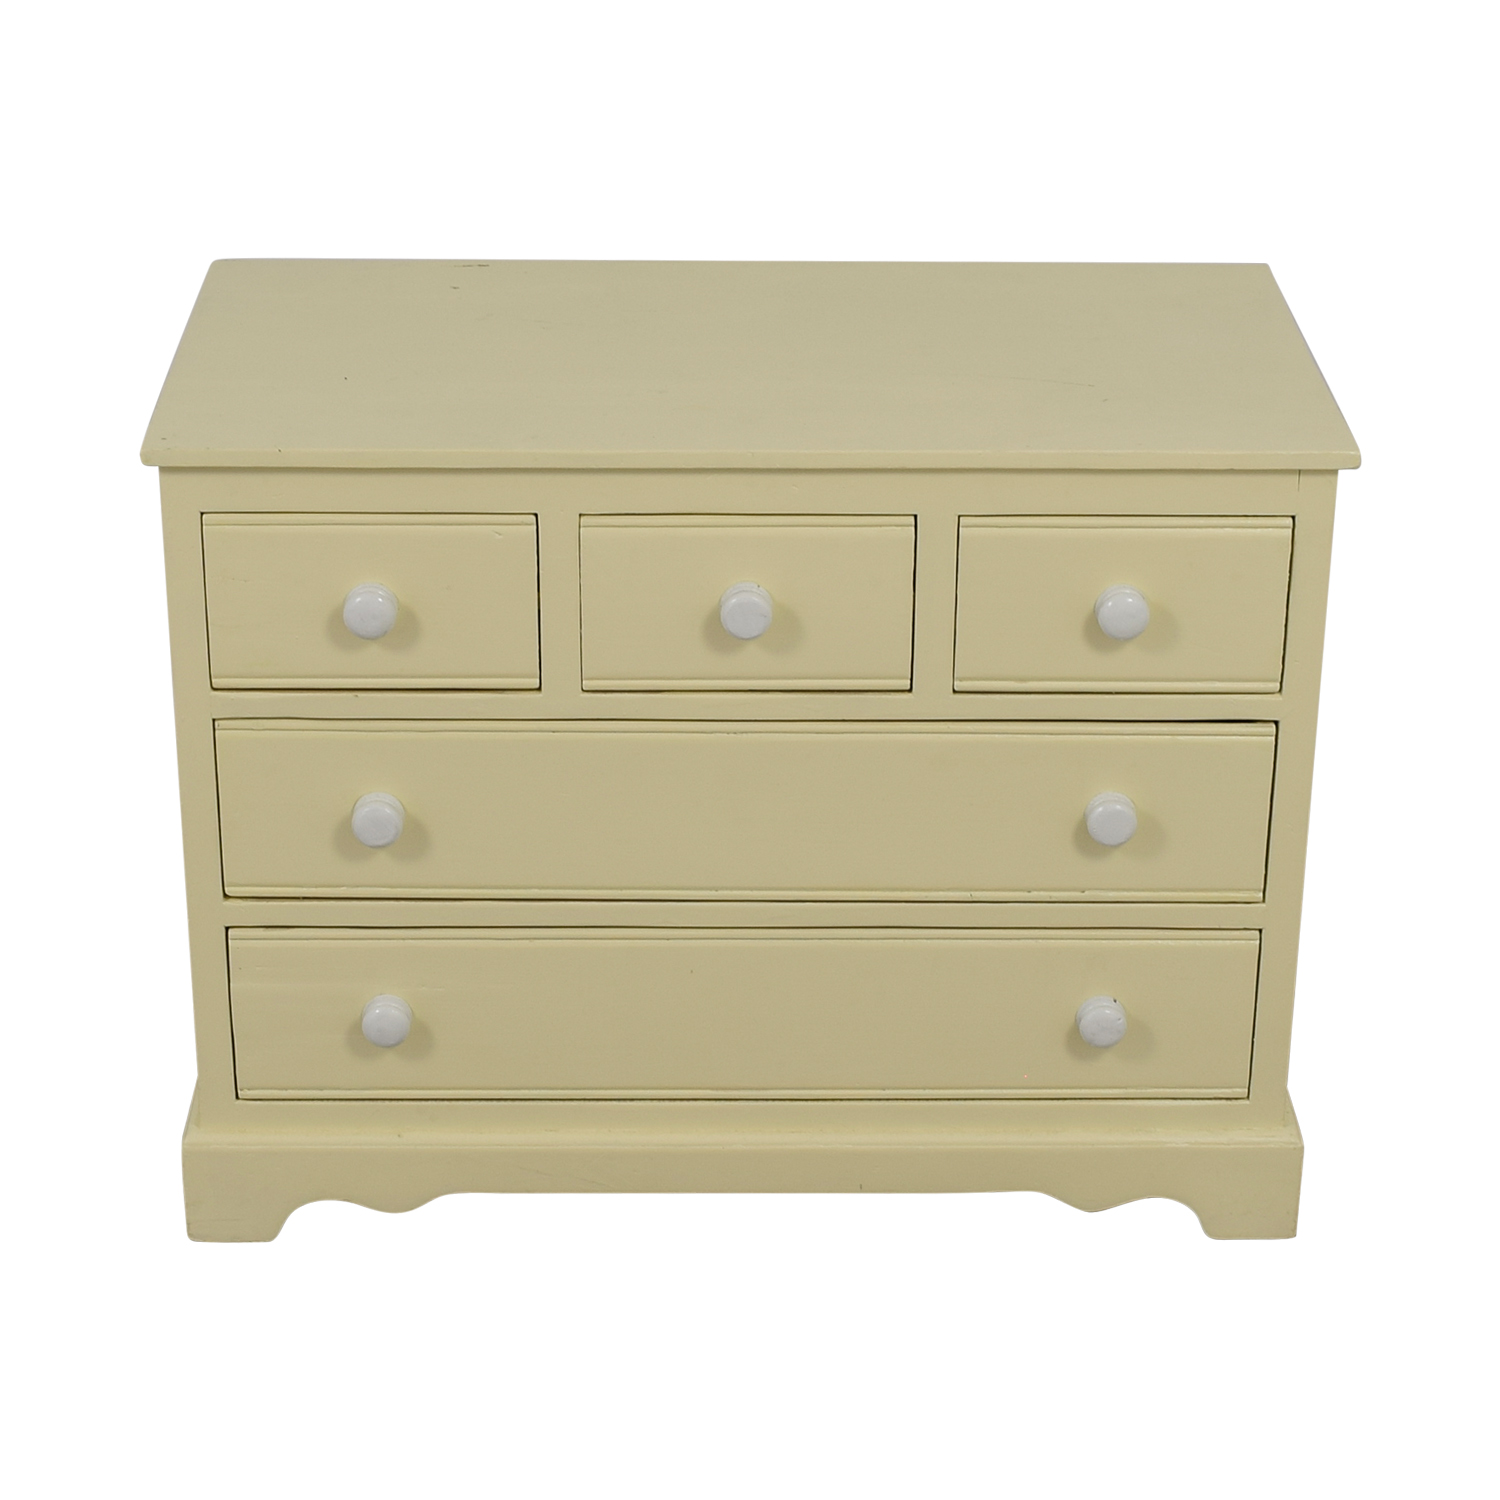 Antique Refurbished Cream Five-Drawer Dresser for sale